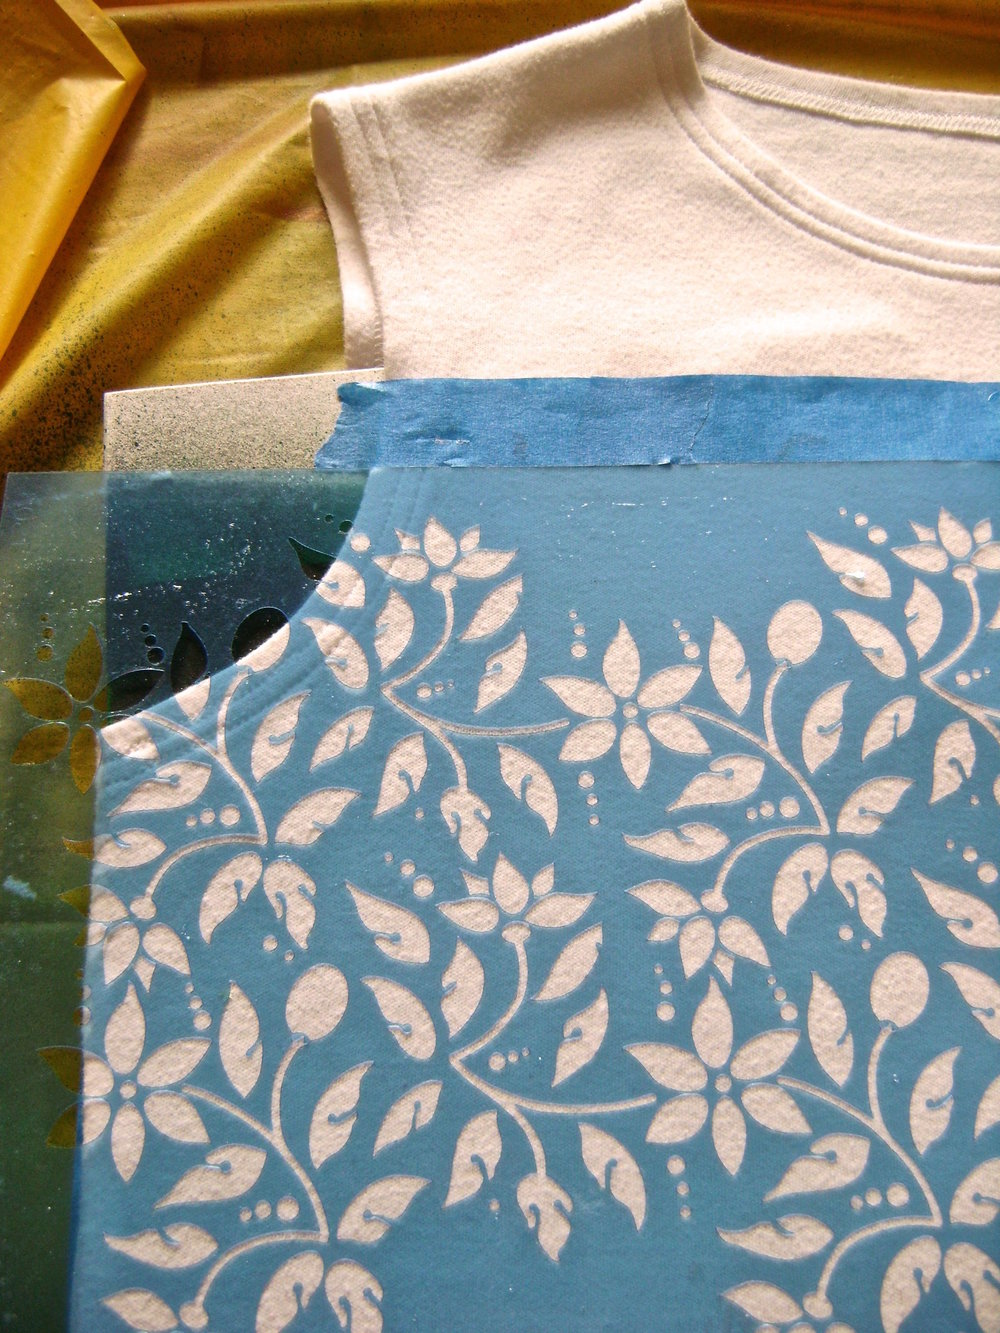 step 4 - Place the stencil on the left side of the shirt with the top edge up against the bottom of the painters tape, and the right edge of the design aligned with the shirt center.  Do not align the right edge of the stencil sheet with the shirt center.  Press down to adhere the stencil to the shirt.   Step 5 - Spray paint the design.